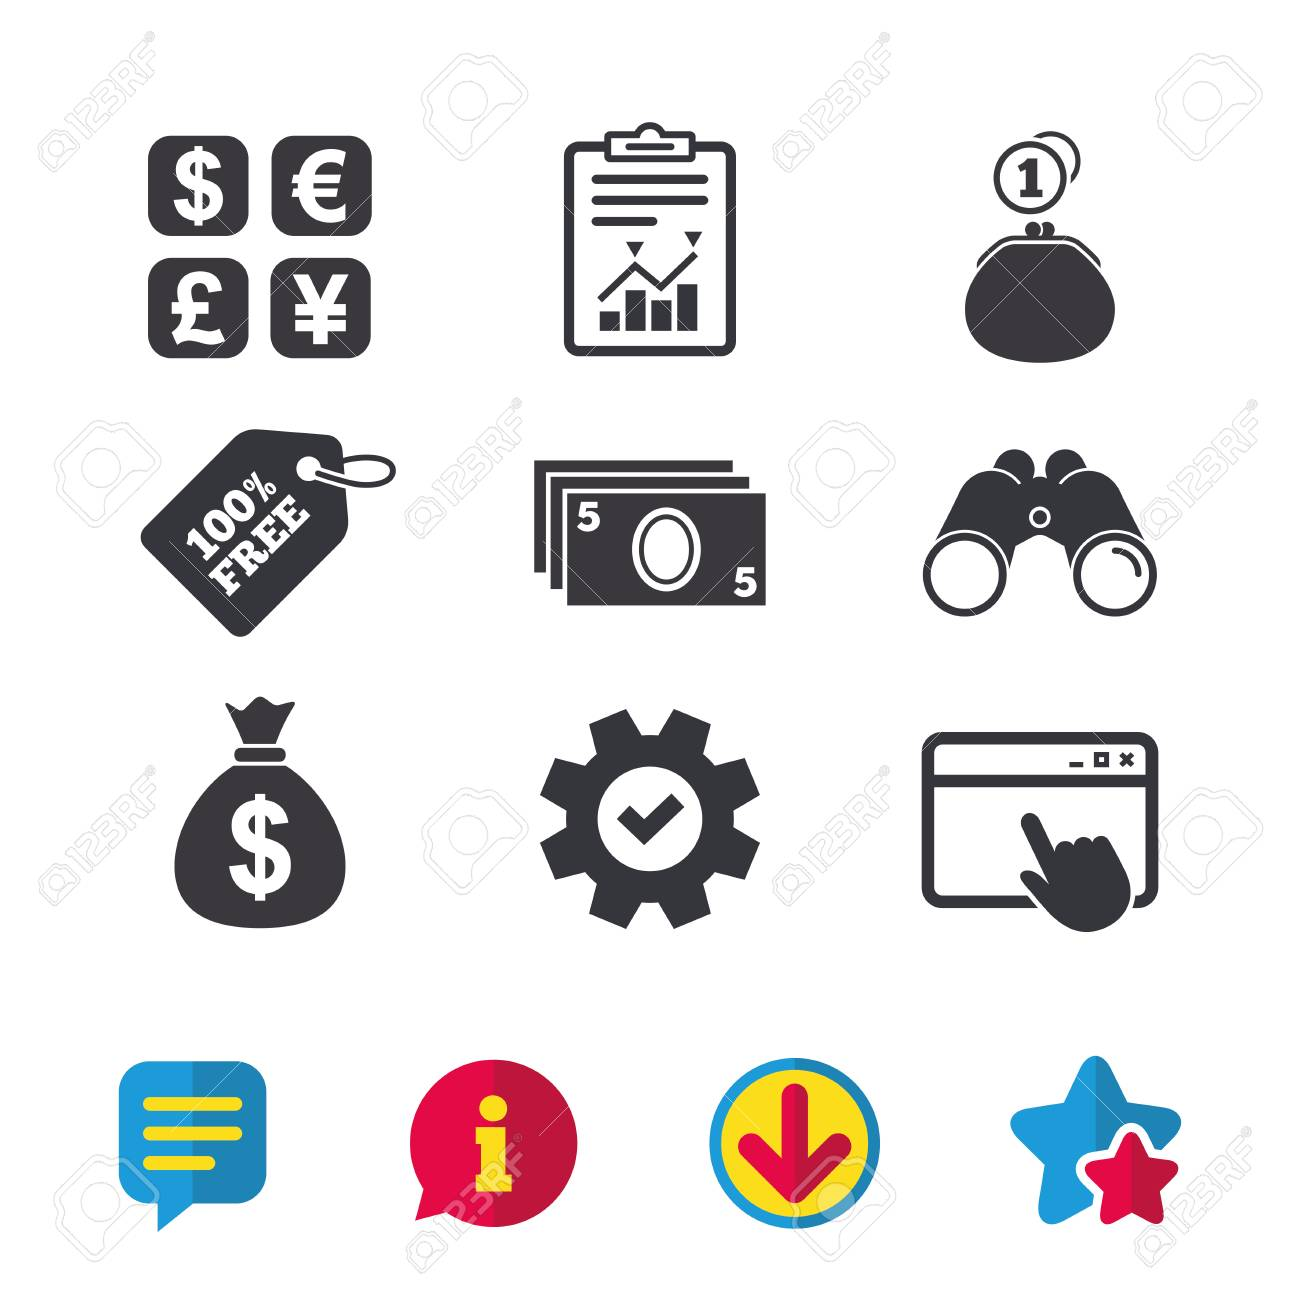 Building Of Market With Wide Windows Ping Icon Stock Vector Ilration Home